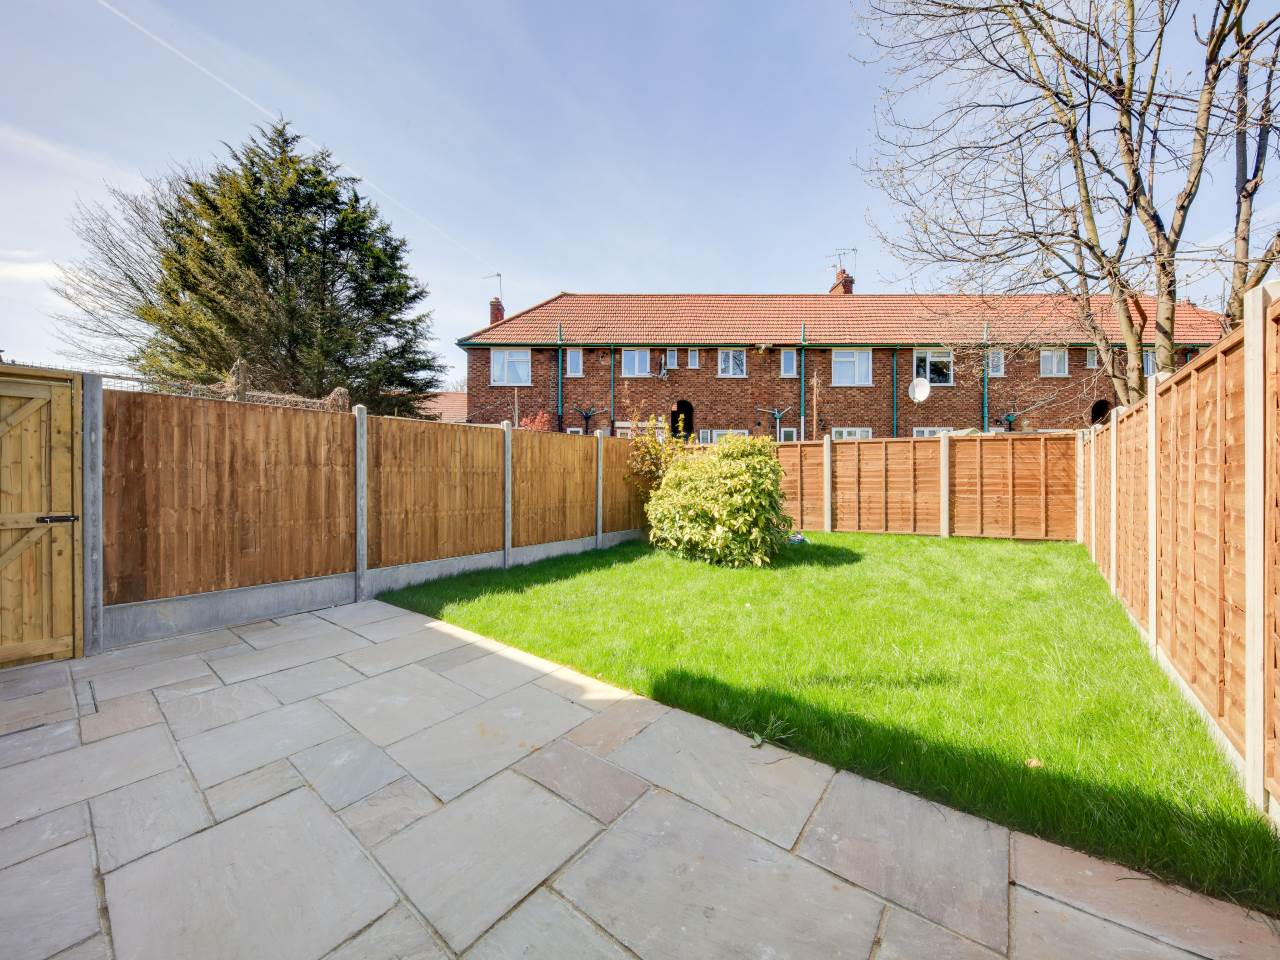 3 bed house for sale in Shernhall Street , Walthamstow   - Property Image 13